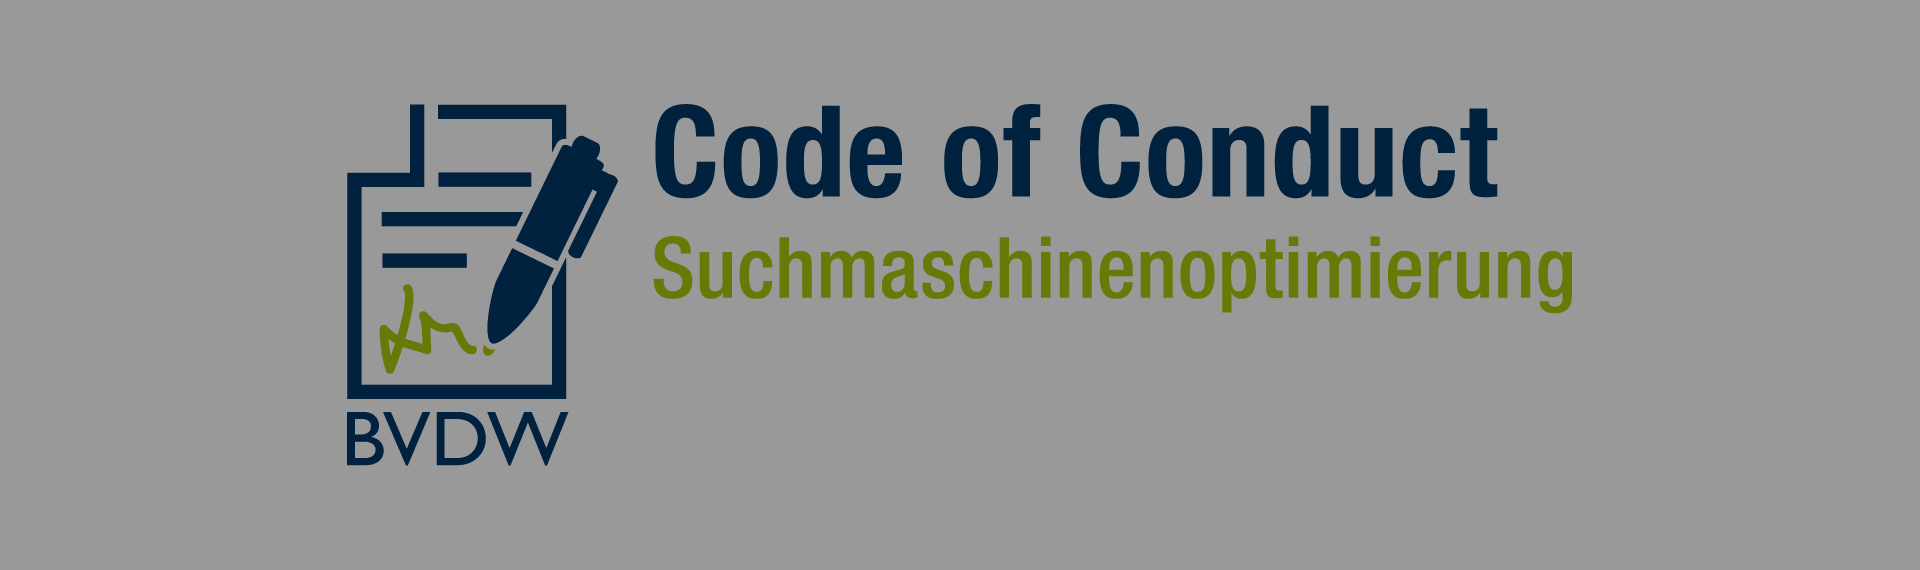 code-of-conduct-suchmaschinenoptimierung